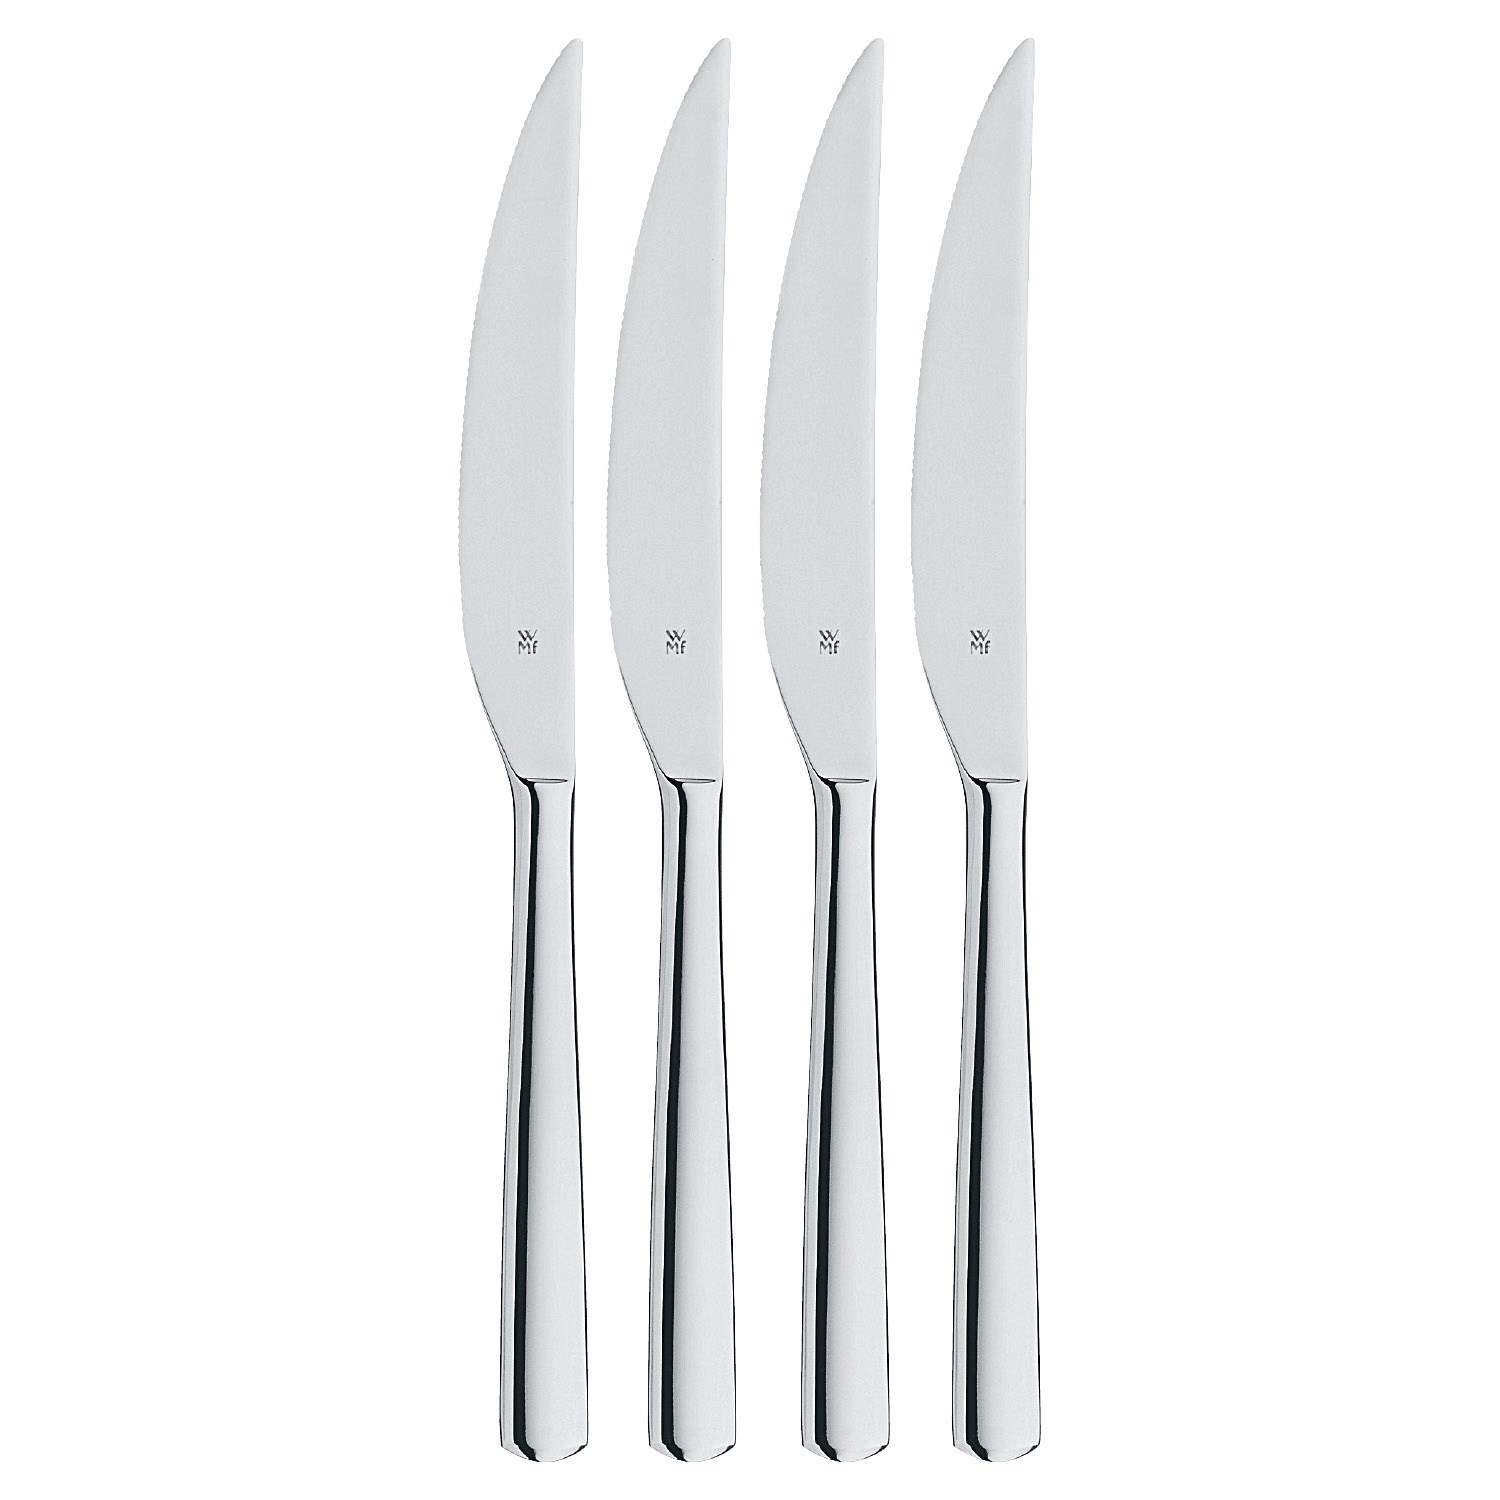 wmf bistro steak knives set of 4 save 40. Black Bedroom Furniture Sets. Home Design Ideas